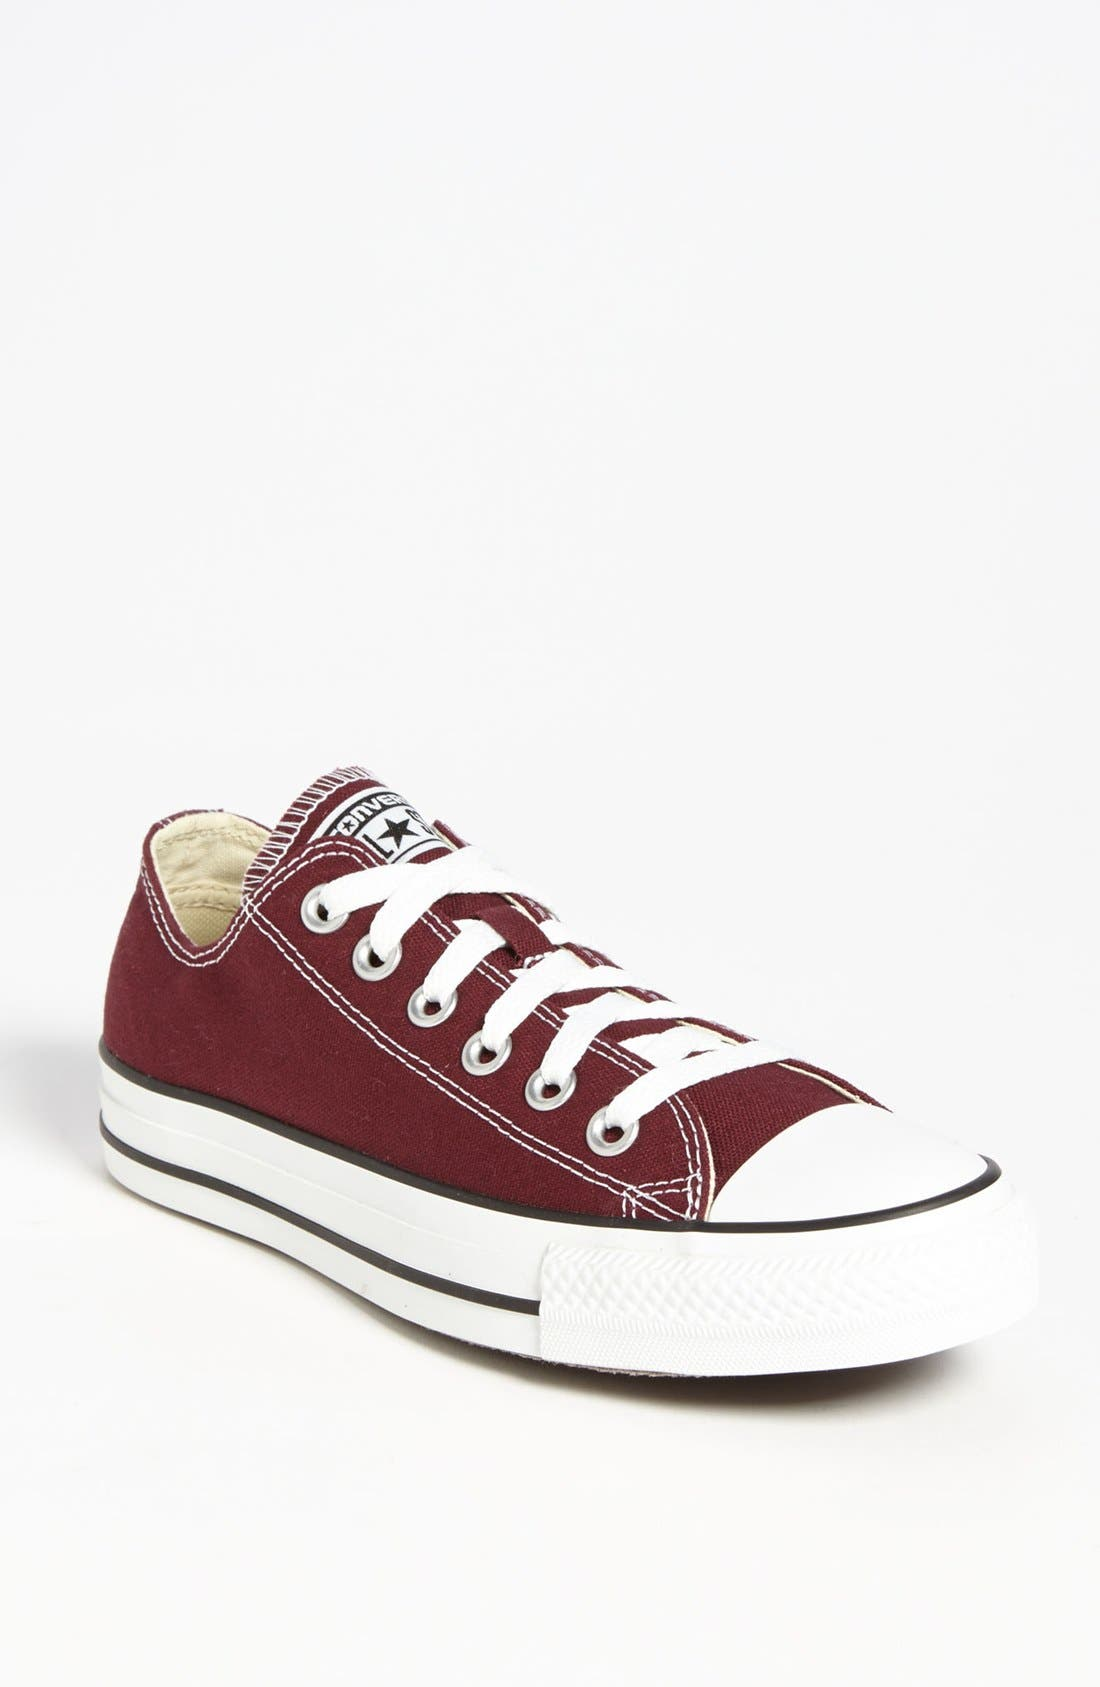 Chuck Taylor<sup>®</sup> All Star<sup>®</sup> Sneaker,                             Main thumbnail 1, color,                             Burgundy